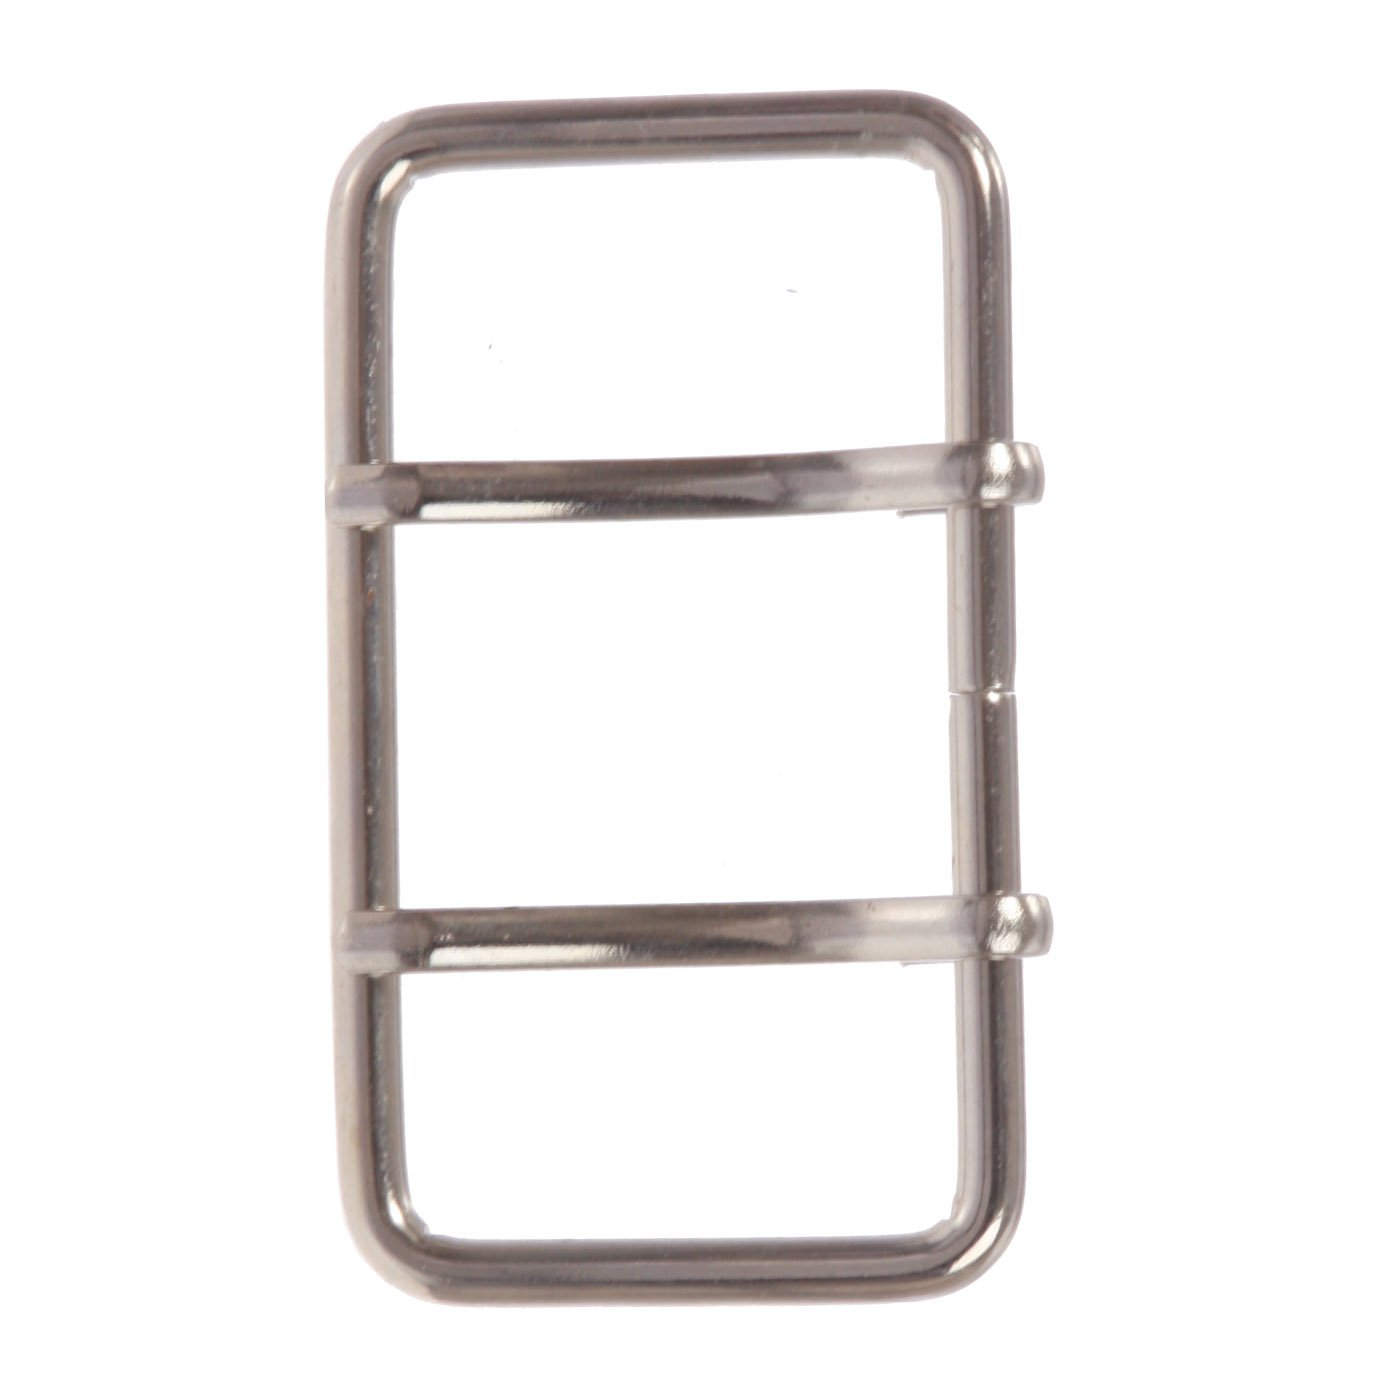 3 Double Prong Rectangle Belt Buckle for Replacement, Silver Beltiscool 500356-qcnf